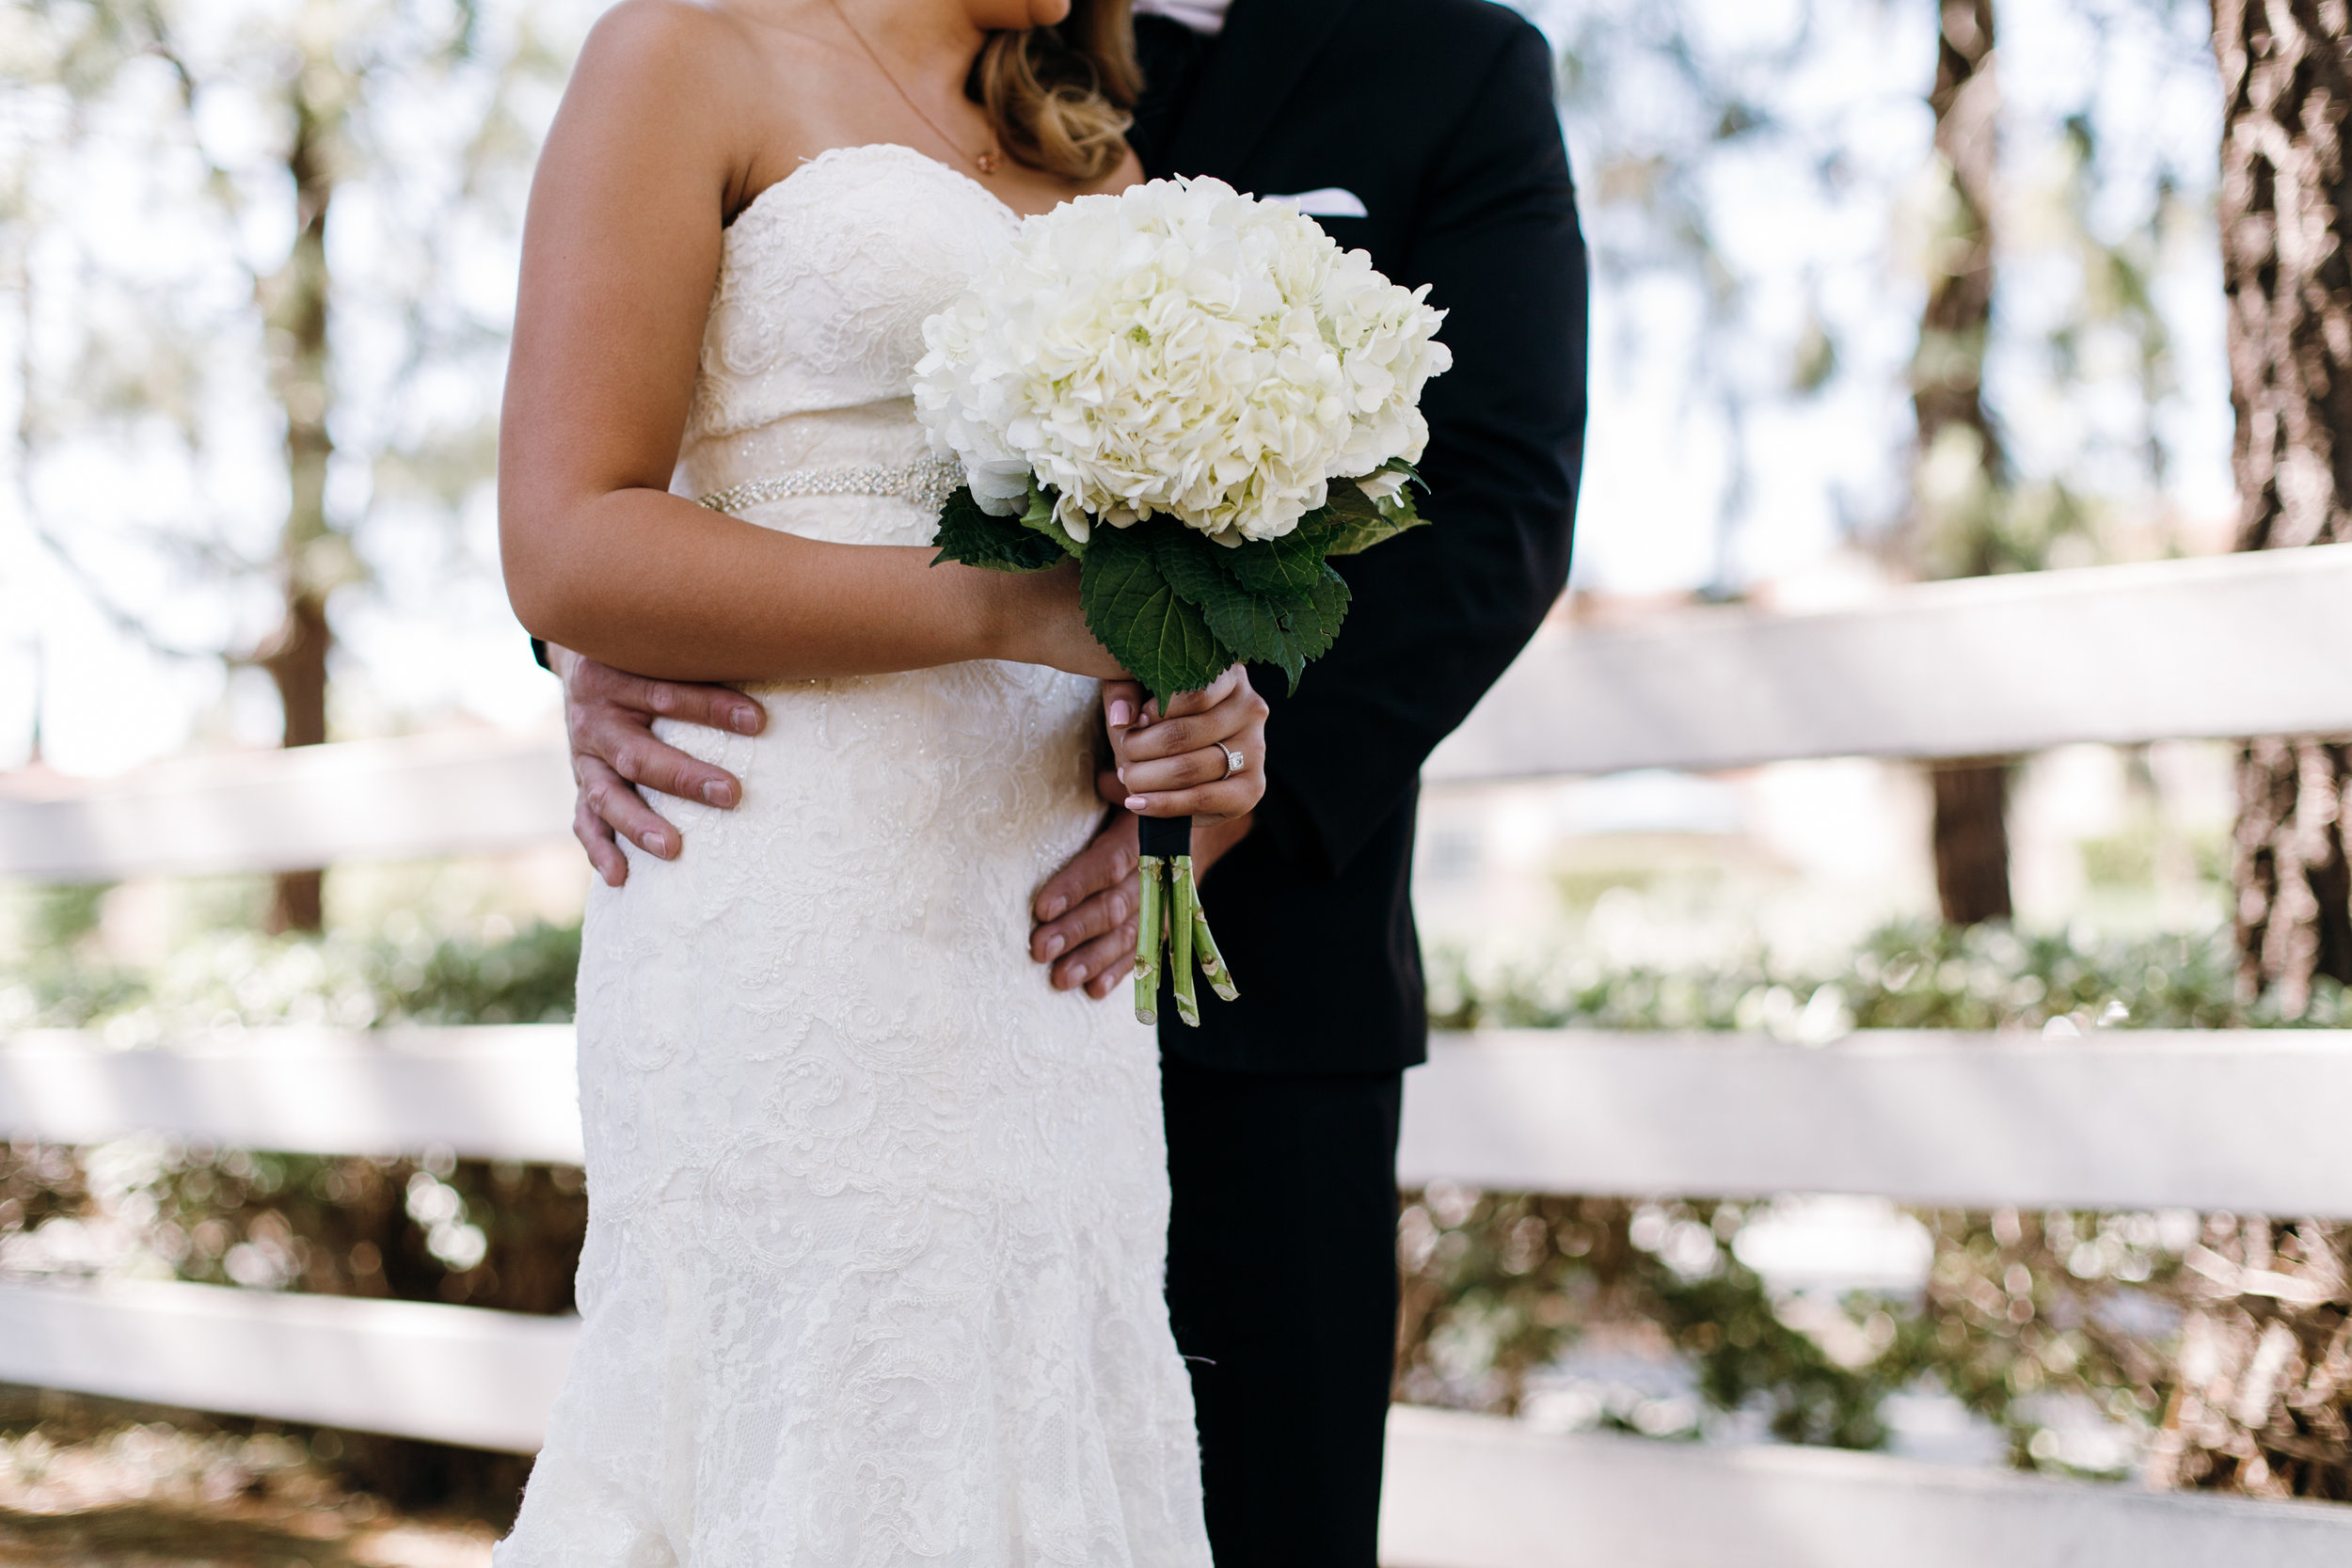 KaraNixonWeddings-CoyoteHillsGolf-Fullerton-Wedding-25.jpg